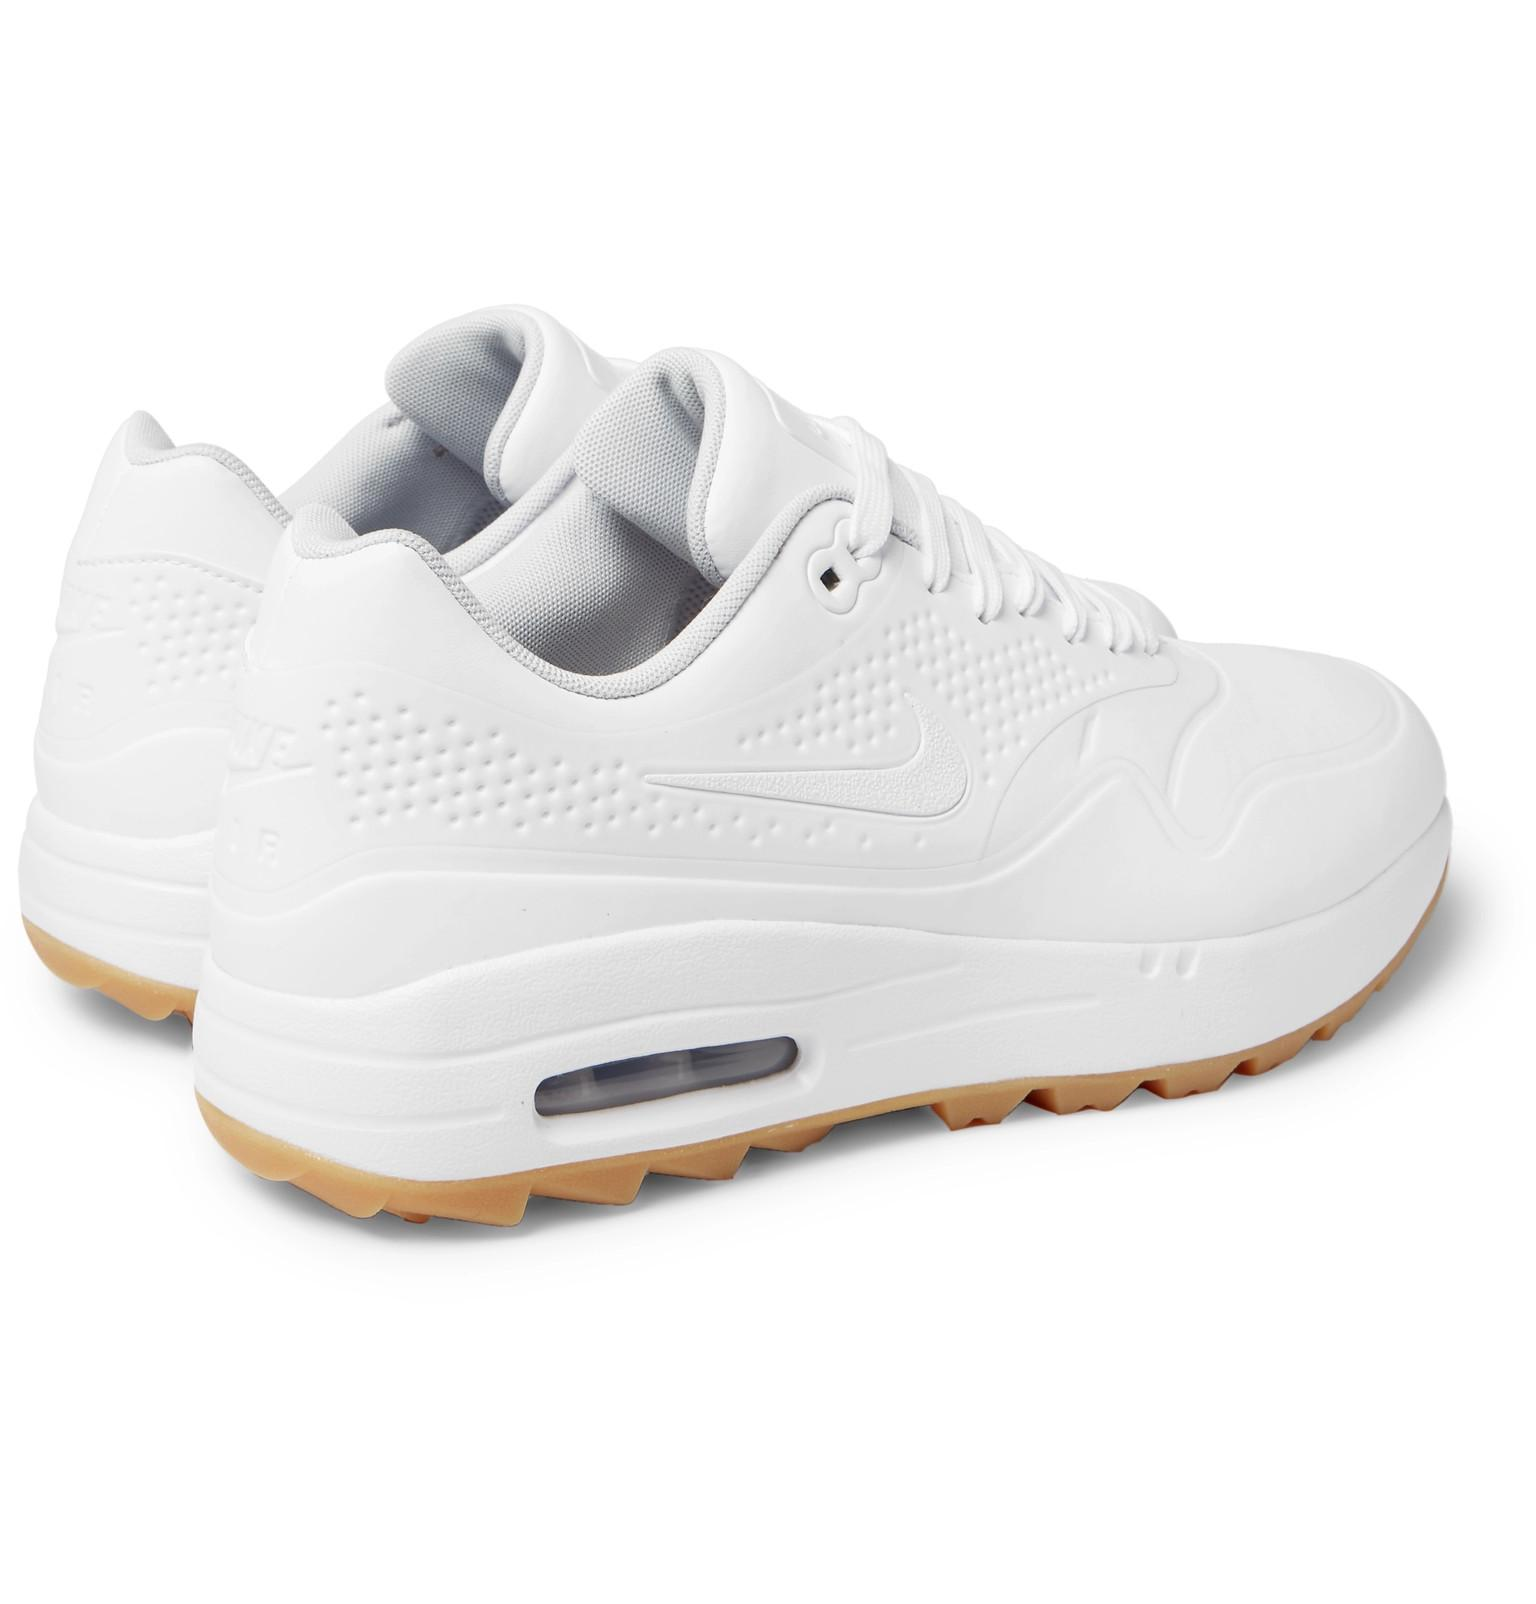 Nike - White Air Max 1g Coated Mesh Golf Shoes for Men - Lyst. View  fullscreen 3735591de